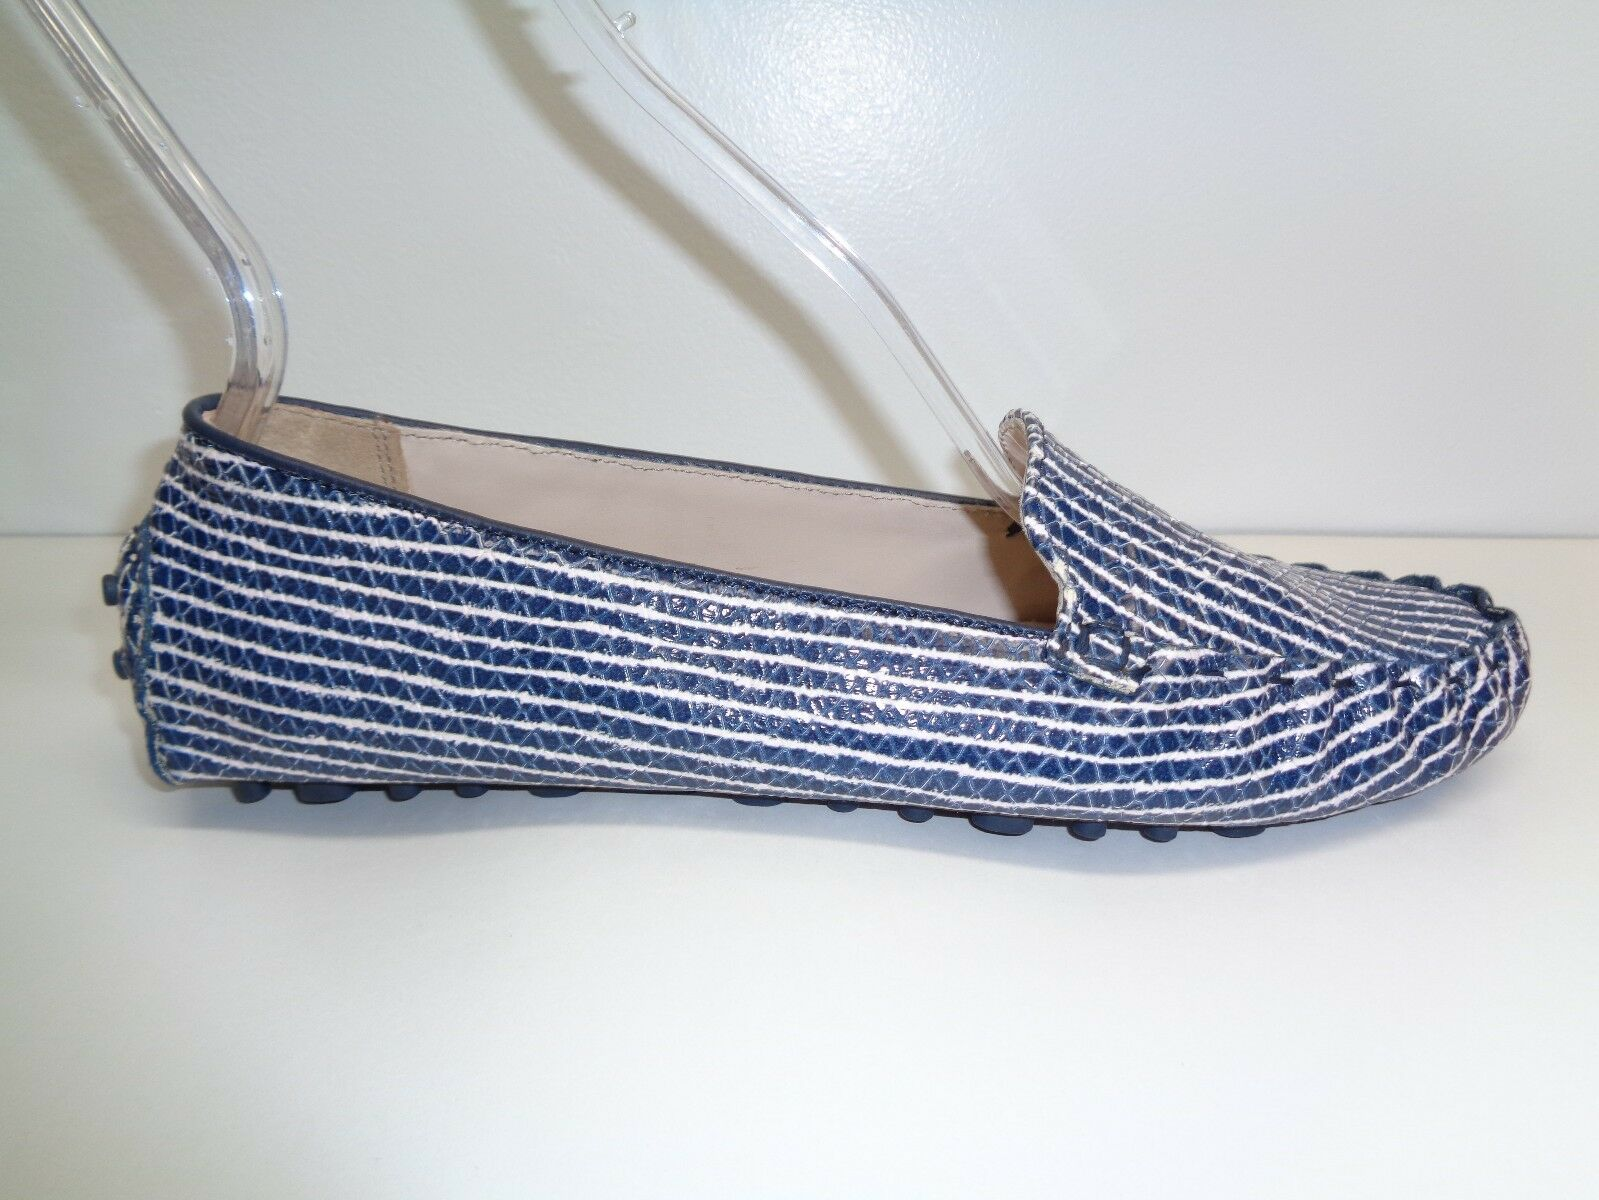 Cole Haan Haan Haan Size 8.5 CARY VENETIAN bluee Leather Moccasins Loafers New Womens shoes 1c91cf